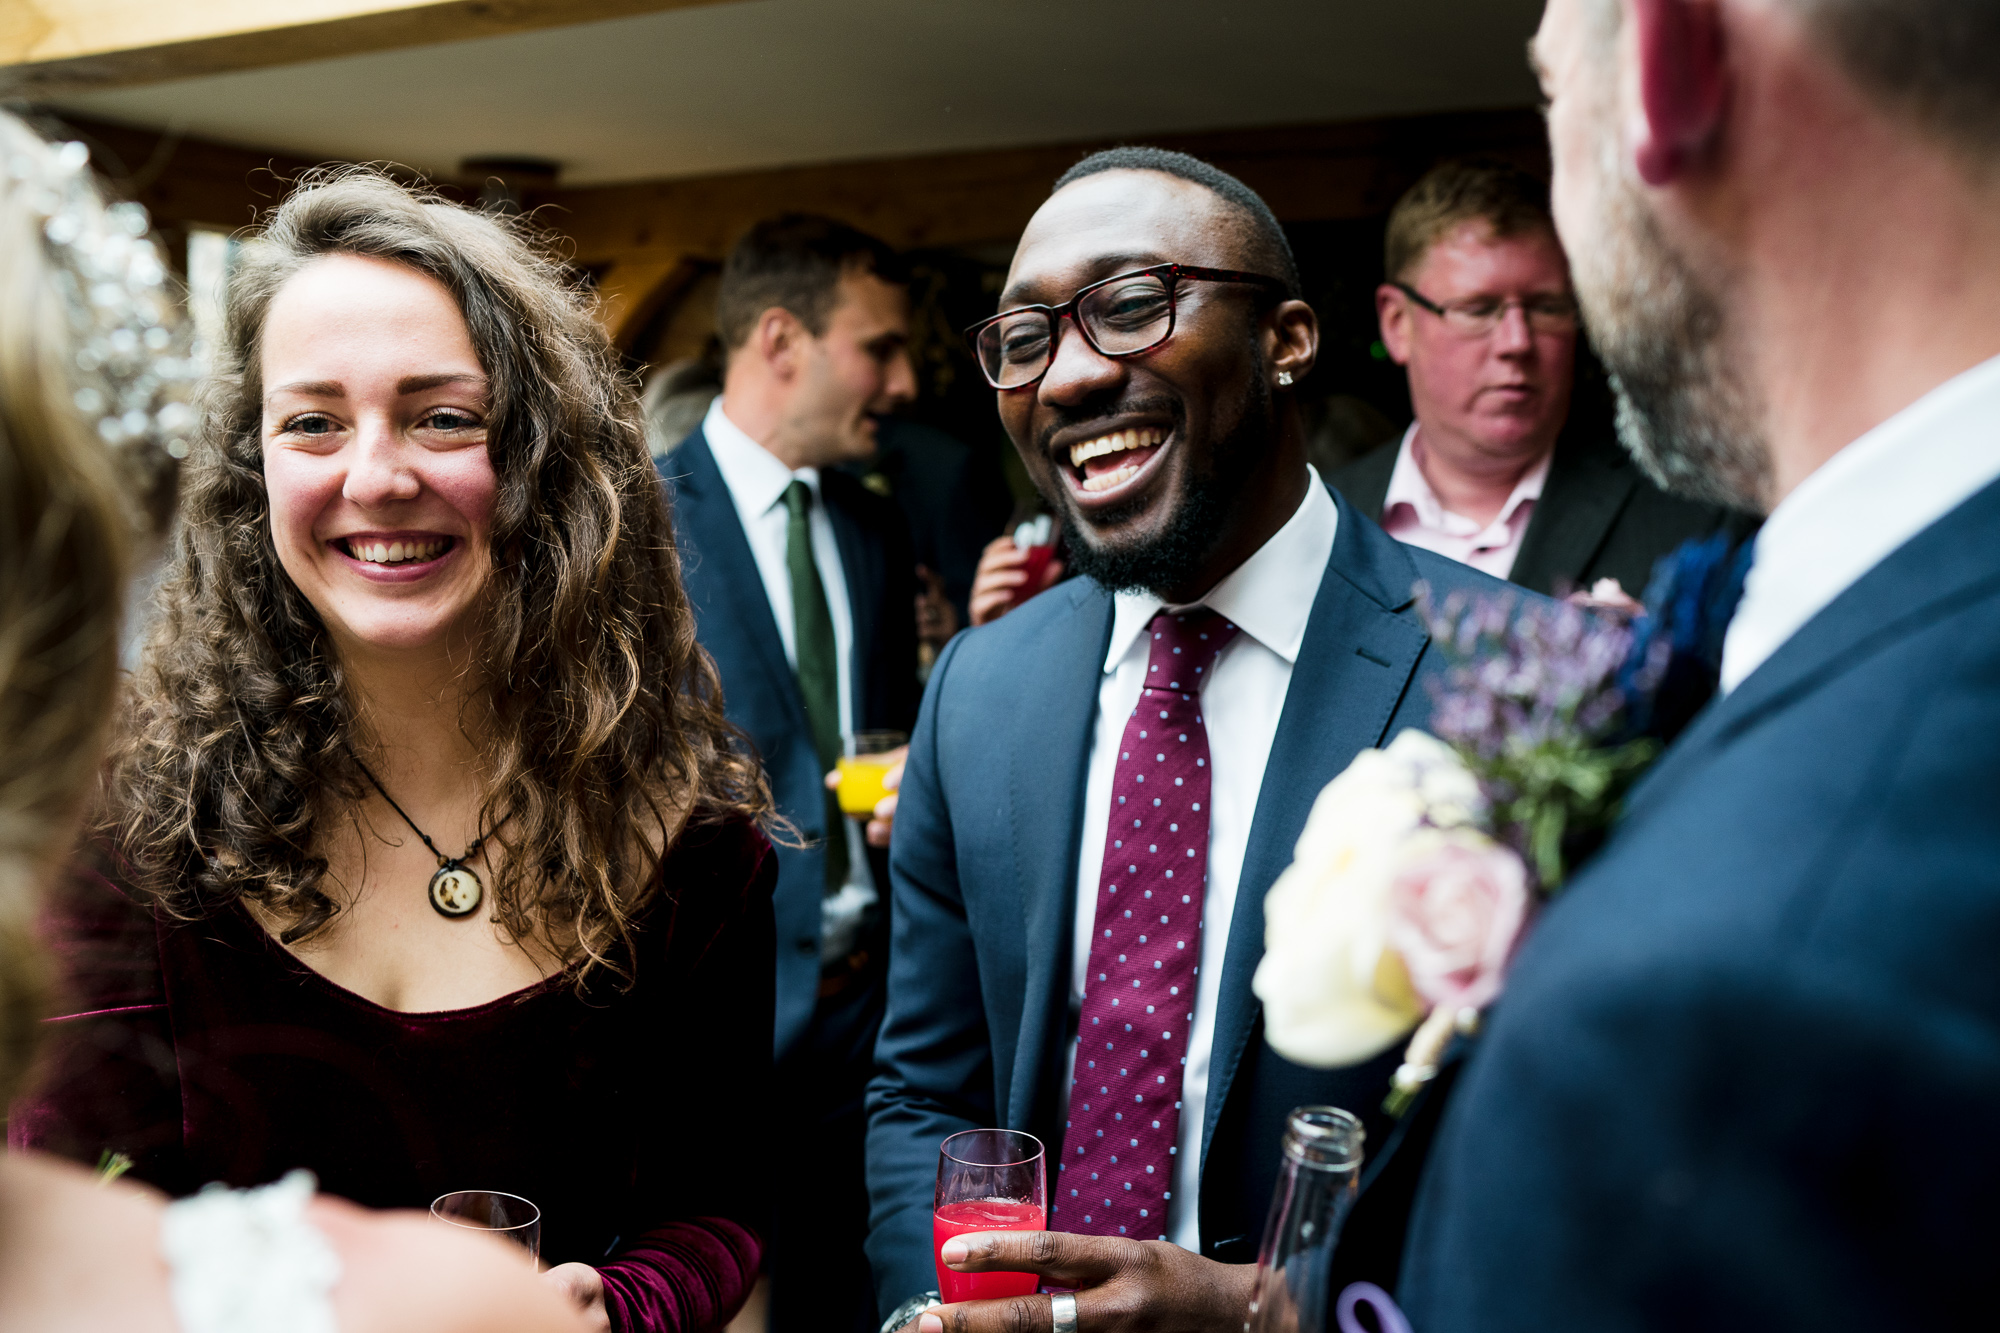 Tower Hill BArn Wedding Photographer based in north west england (27 of 35).jpg